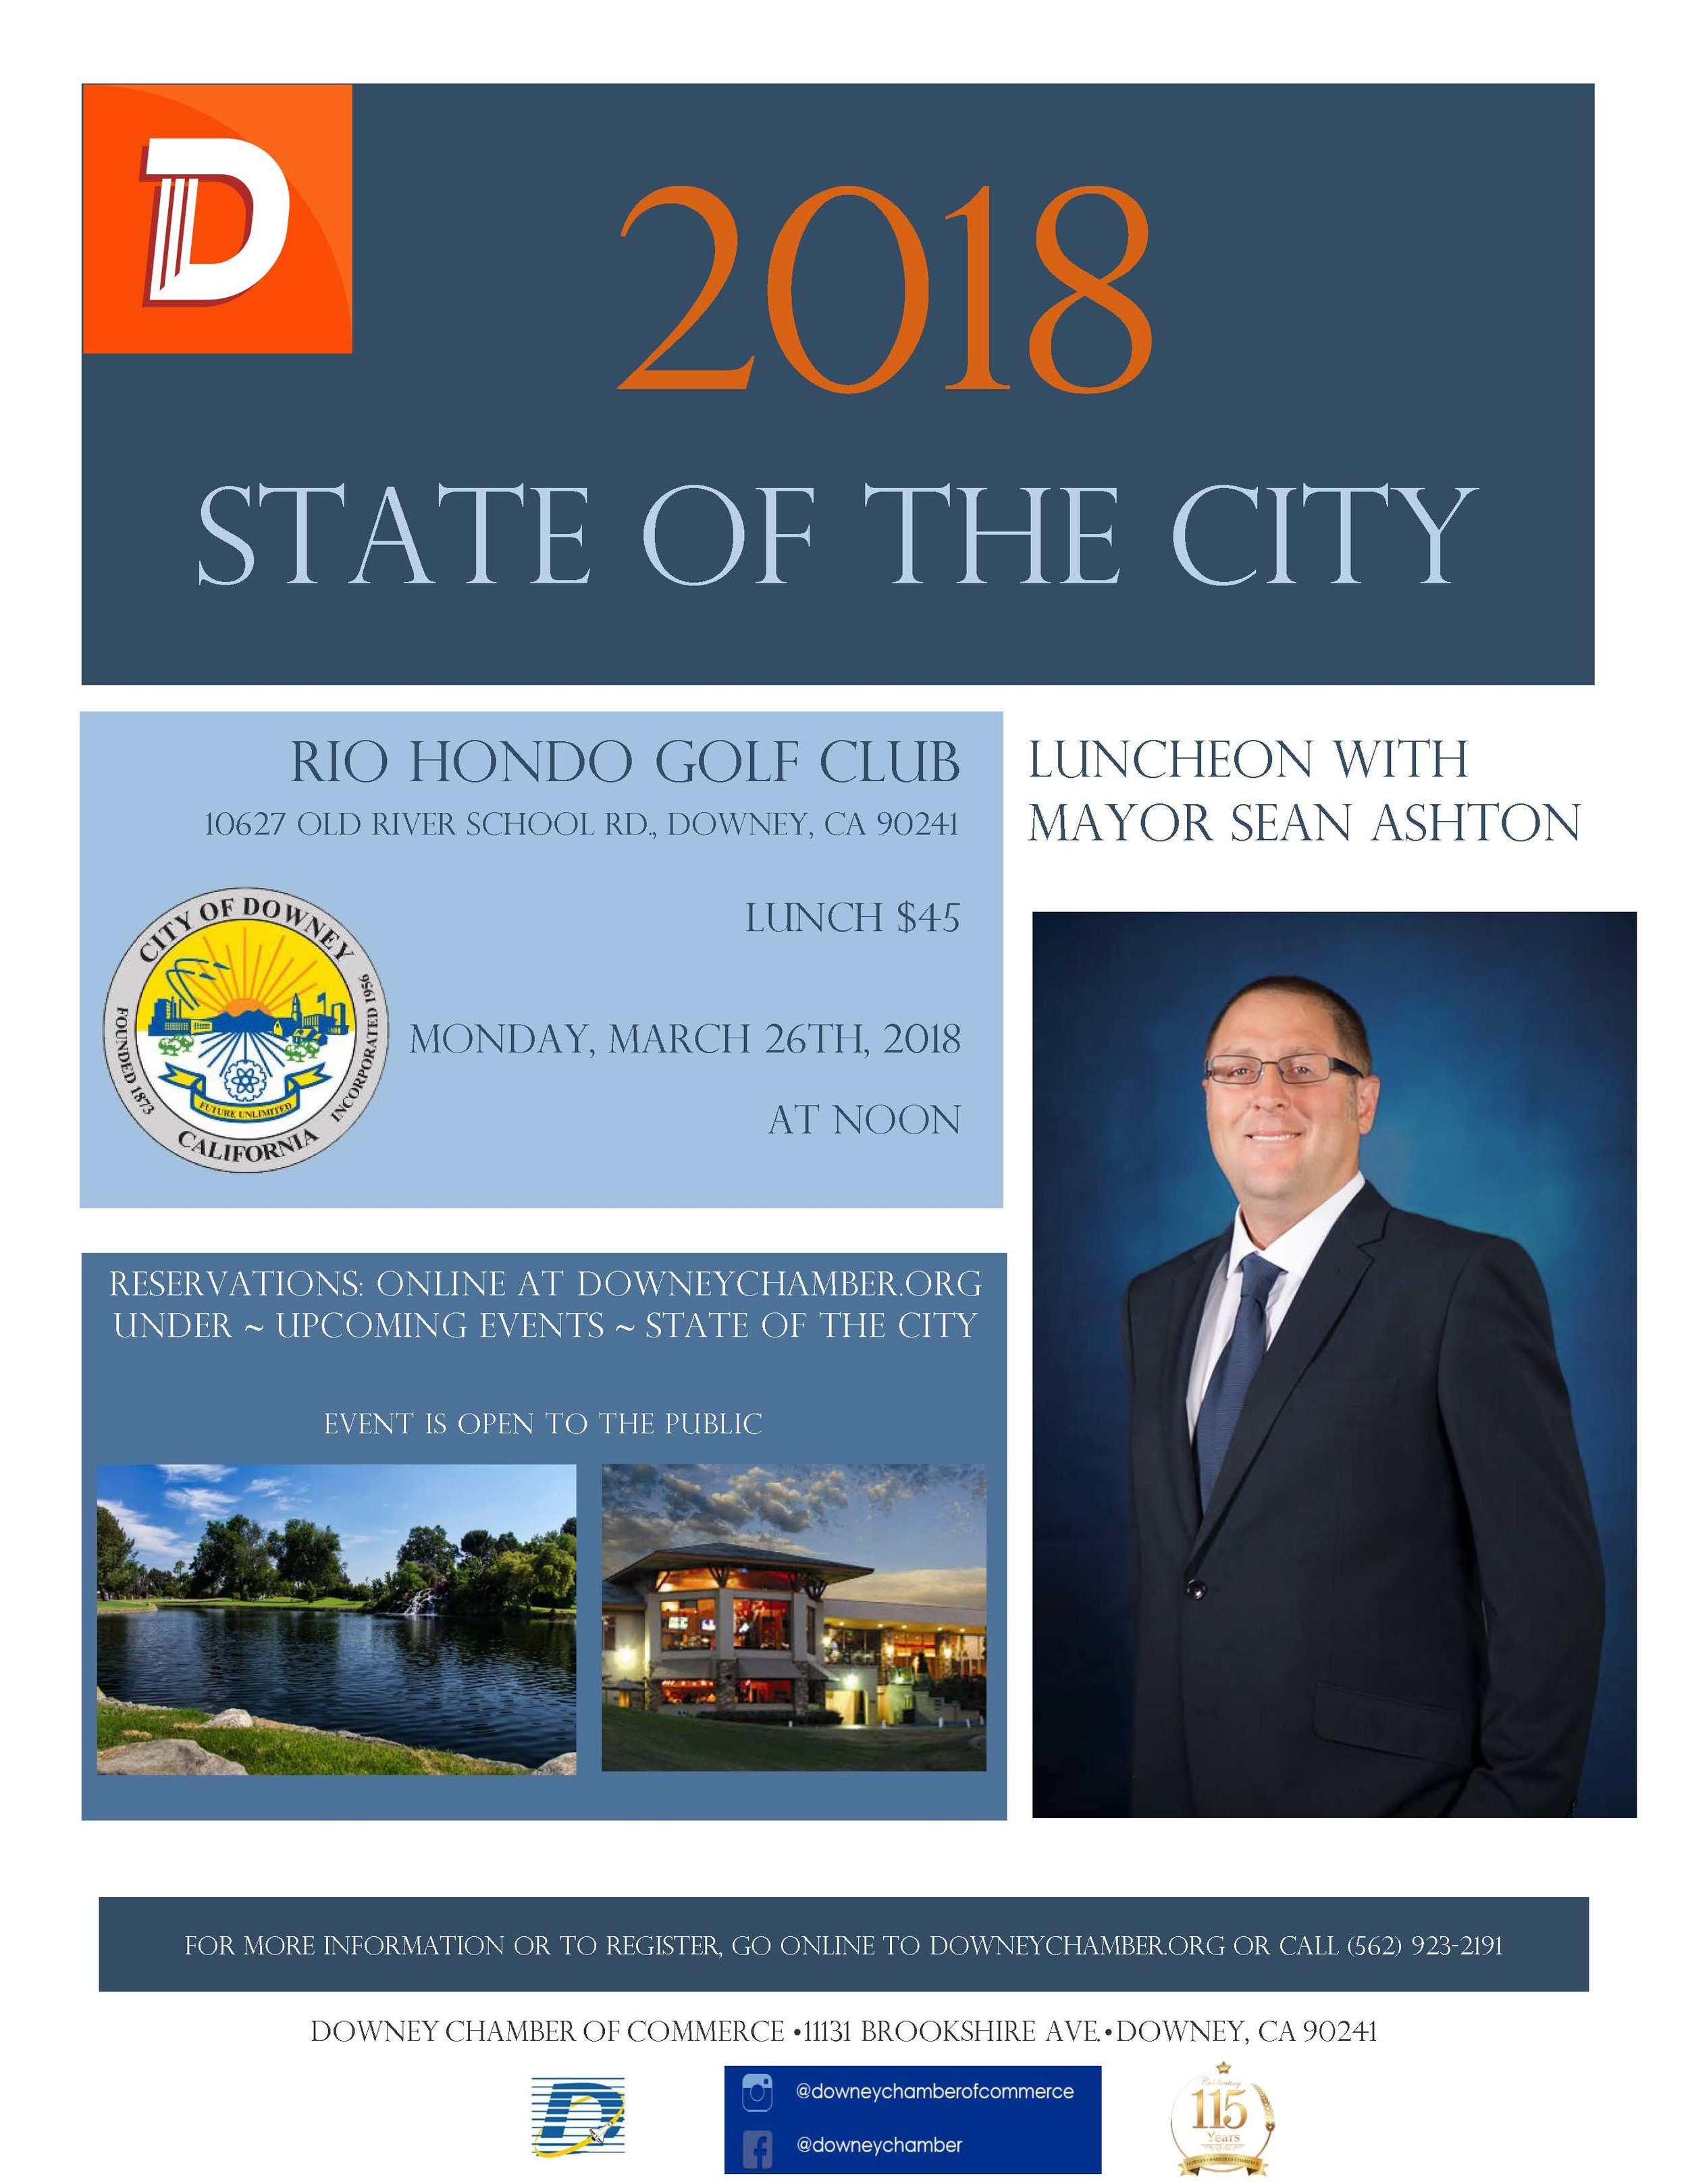 20180326-State of the City flyer, designed by Chamber.jpg